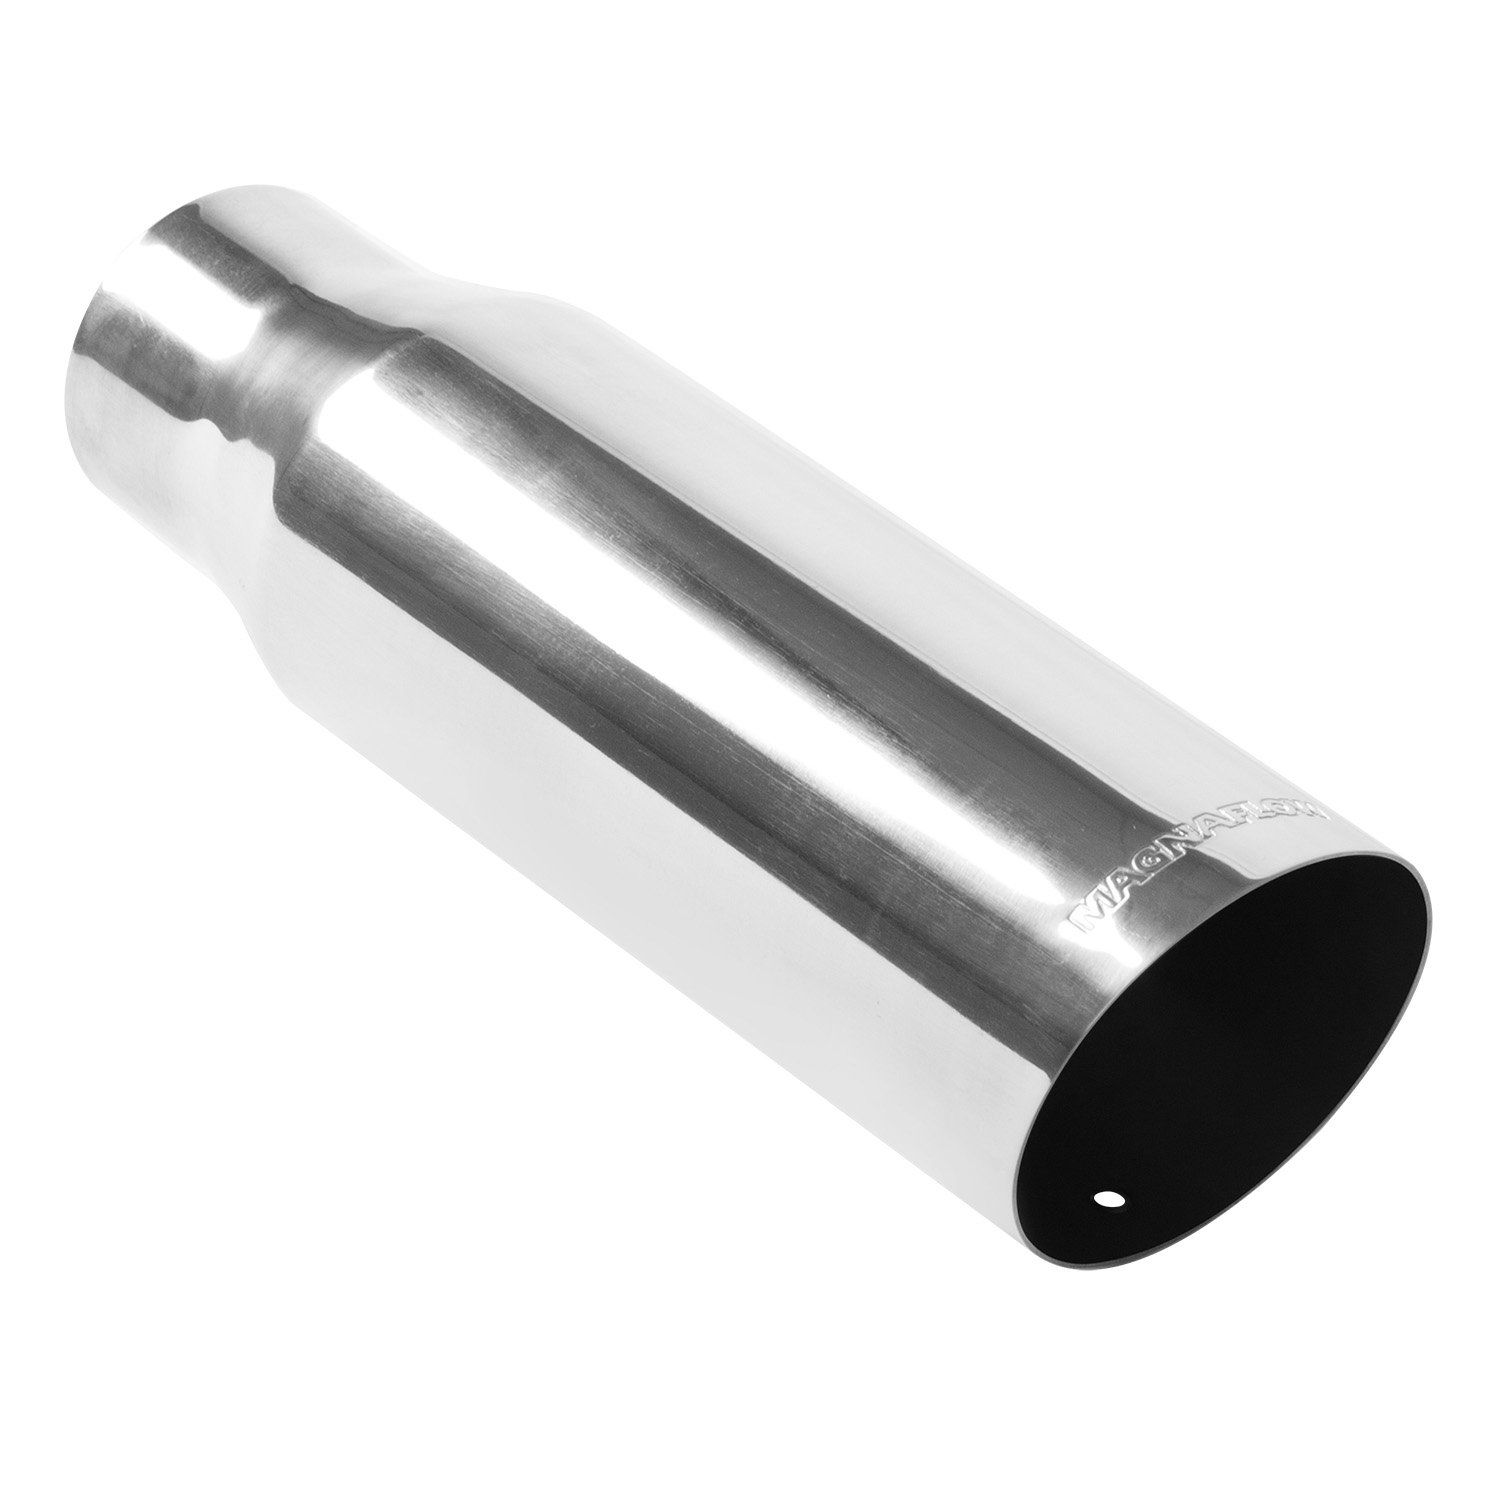 Magnaflow 35107 EXHAUST TAIL PIPE TIP